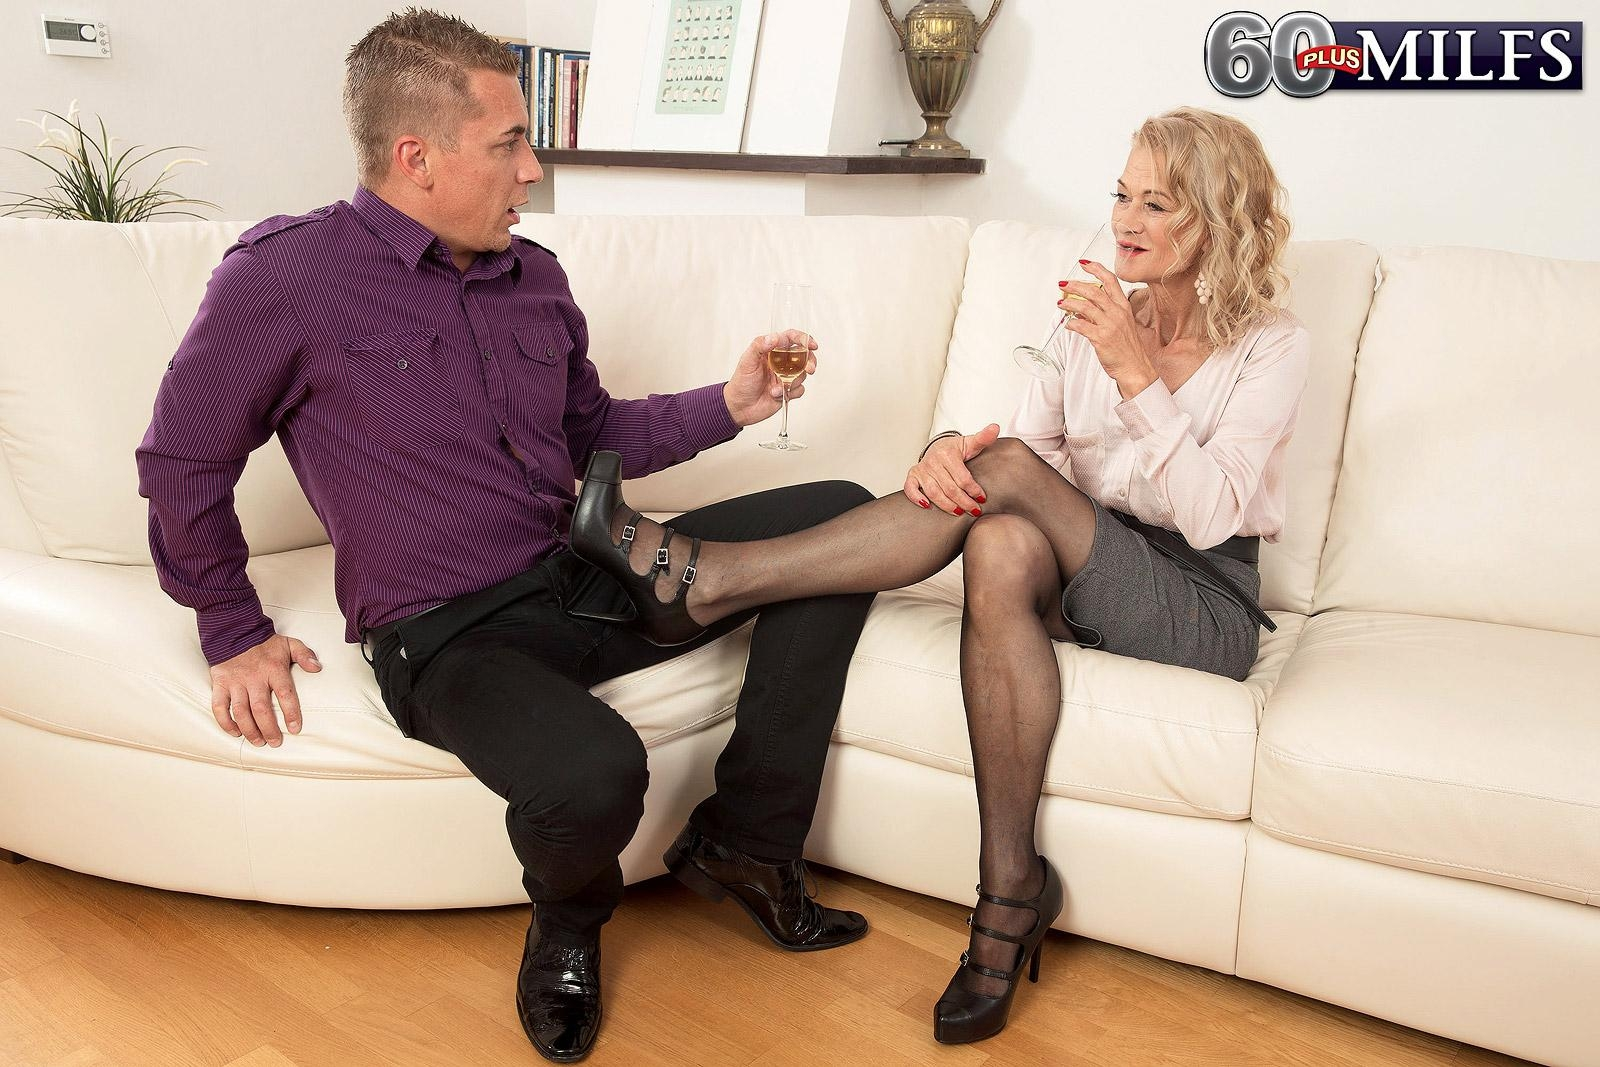 Hot older woman Beata gives a ball licking blowjob after seducing a younger man